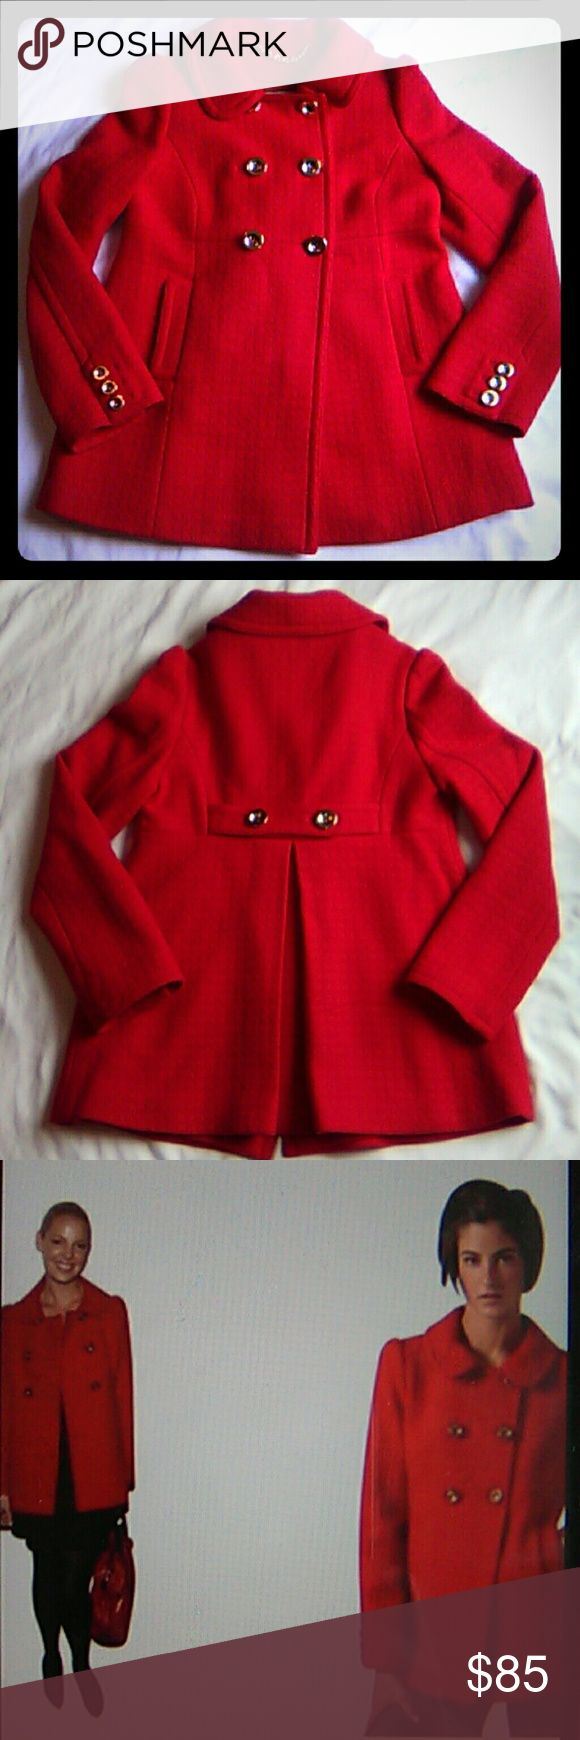 """Juicy Couture Red Wool Blend Swing Pea Coat Juicy Couture Red Wool Blend Pea coat with gold buttons. Perfect peacoat to make a statement. Warm and cozy. Peter Pan collar. Worn a few times but still in great condition! Measurements laying flat: length 26 1/2"""", bust 18"""" and sleeves length 24"""" Juicy Couture Jackets & Coats Pea Coats"""